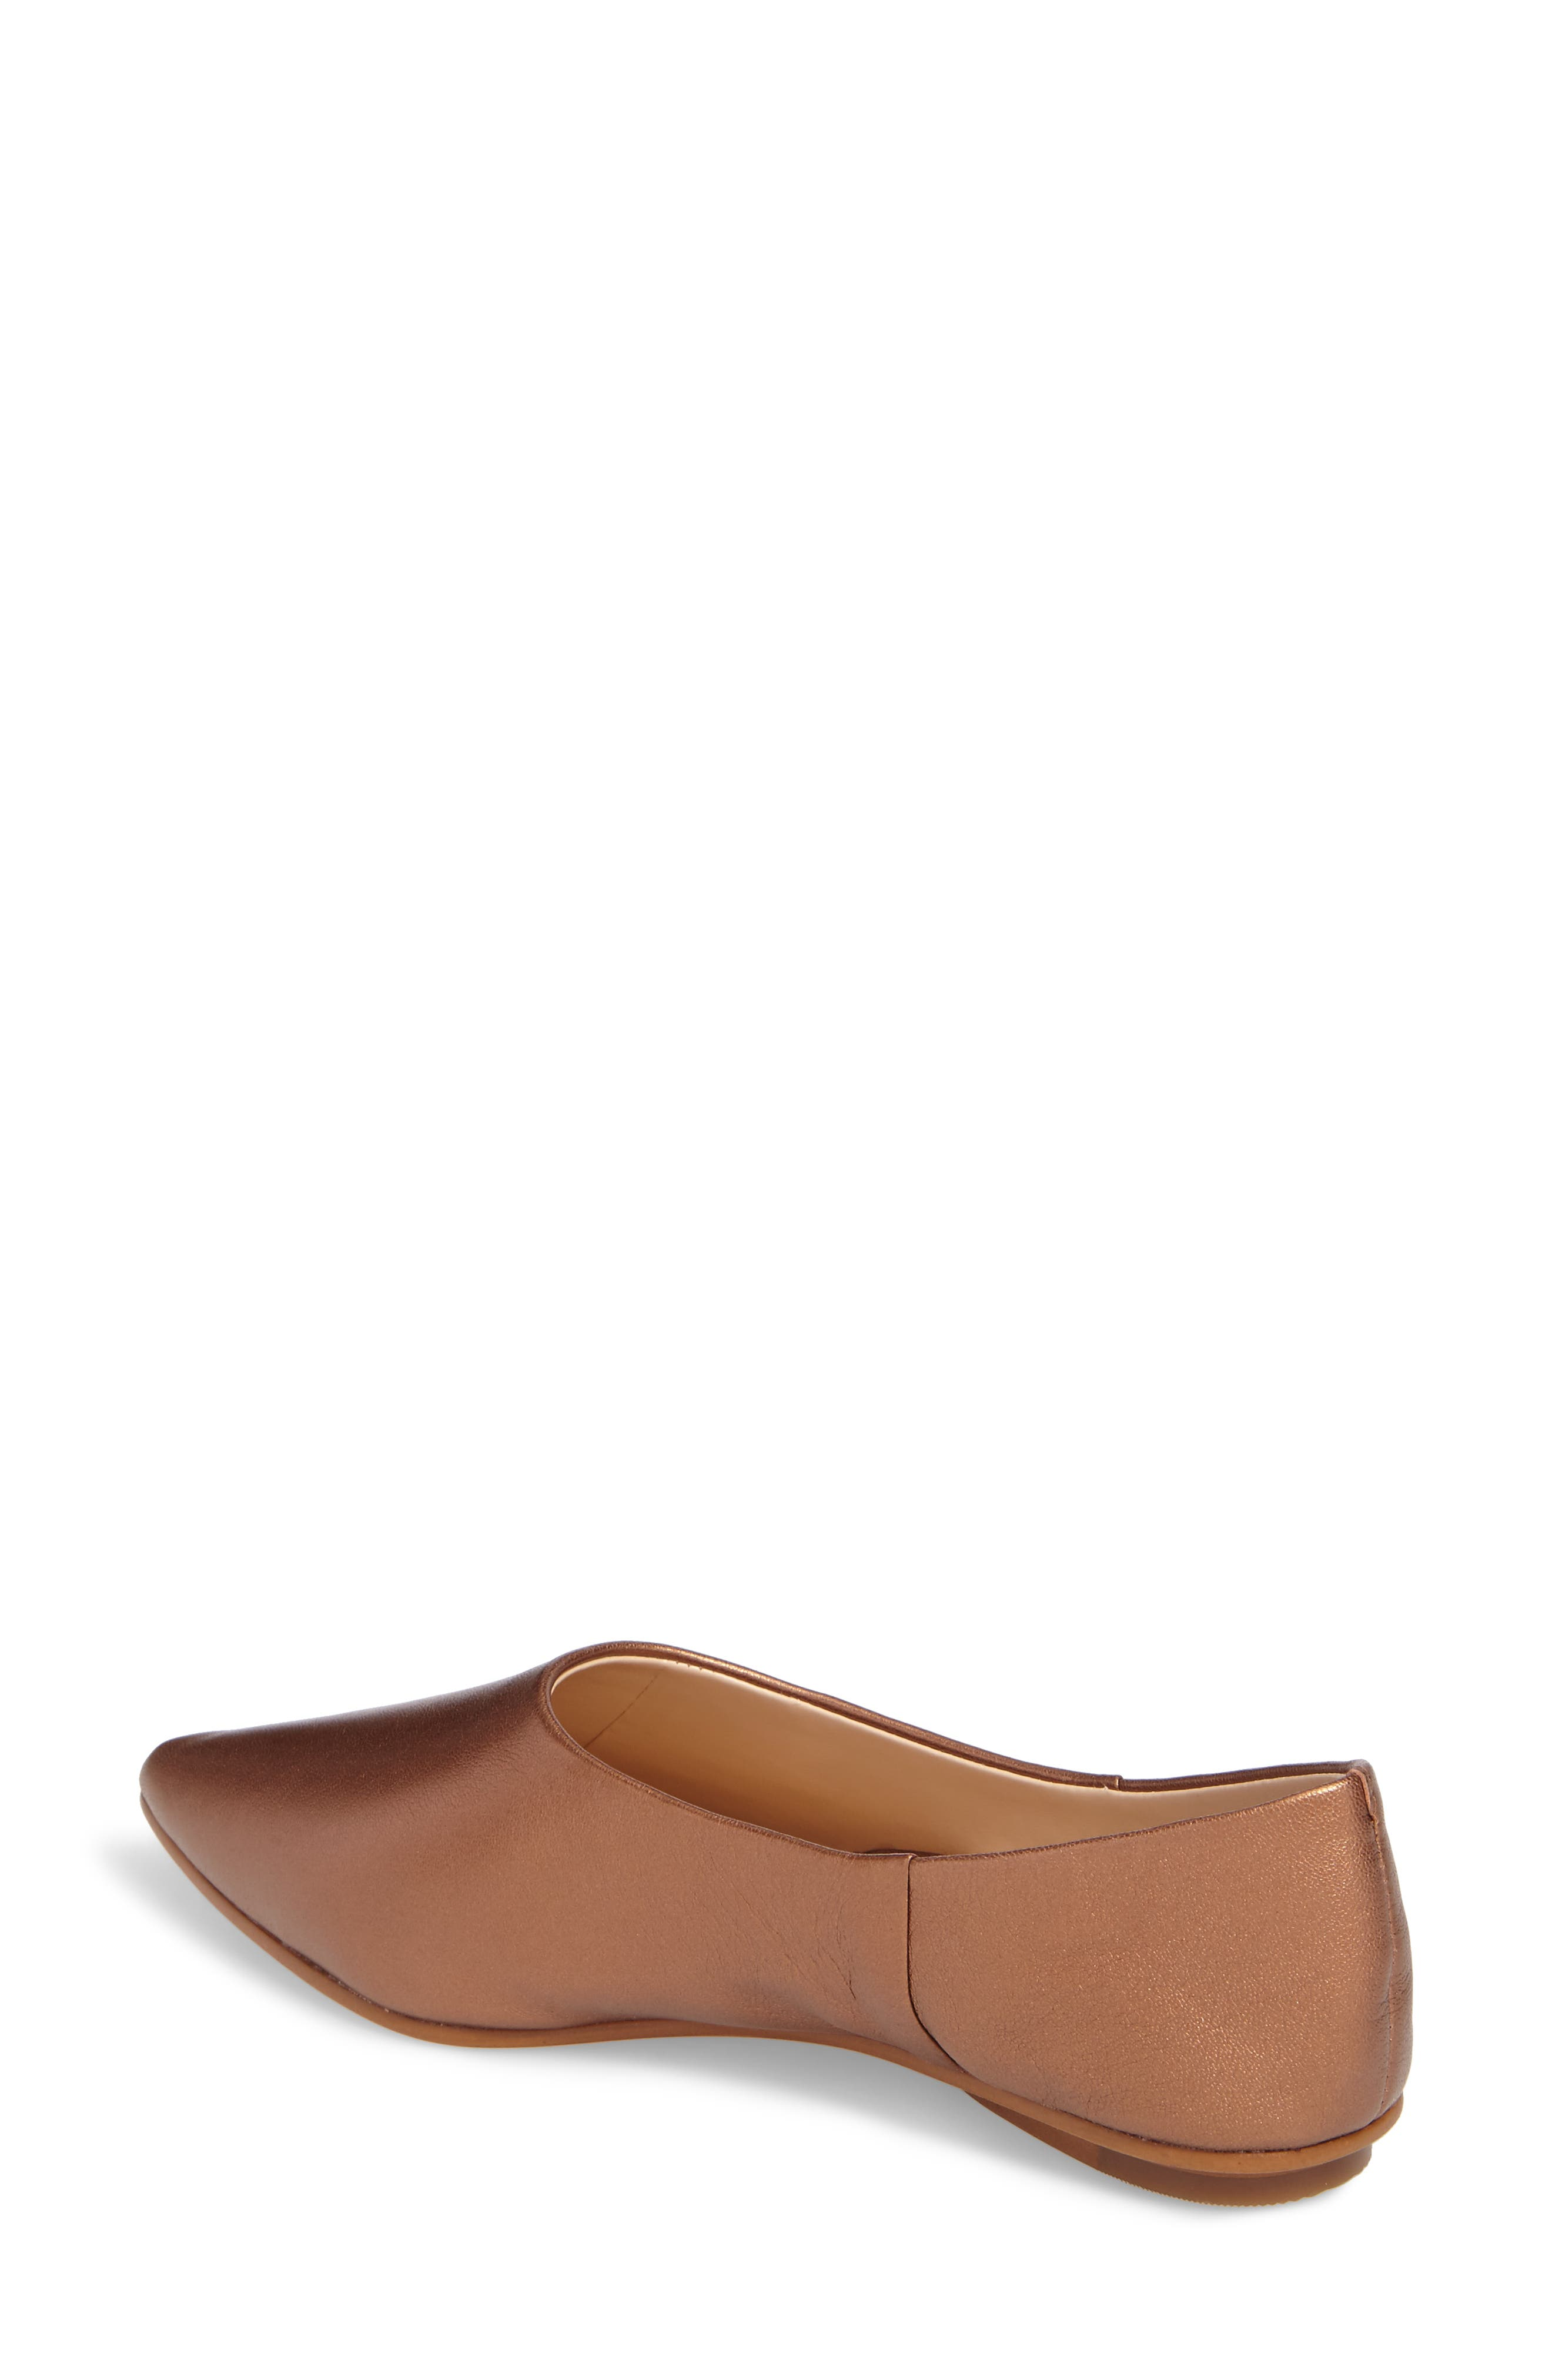 Stanta Pointy Toe Flat,                             Alternate thumbnail 2, color,                             Penny Leather